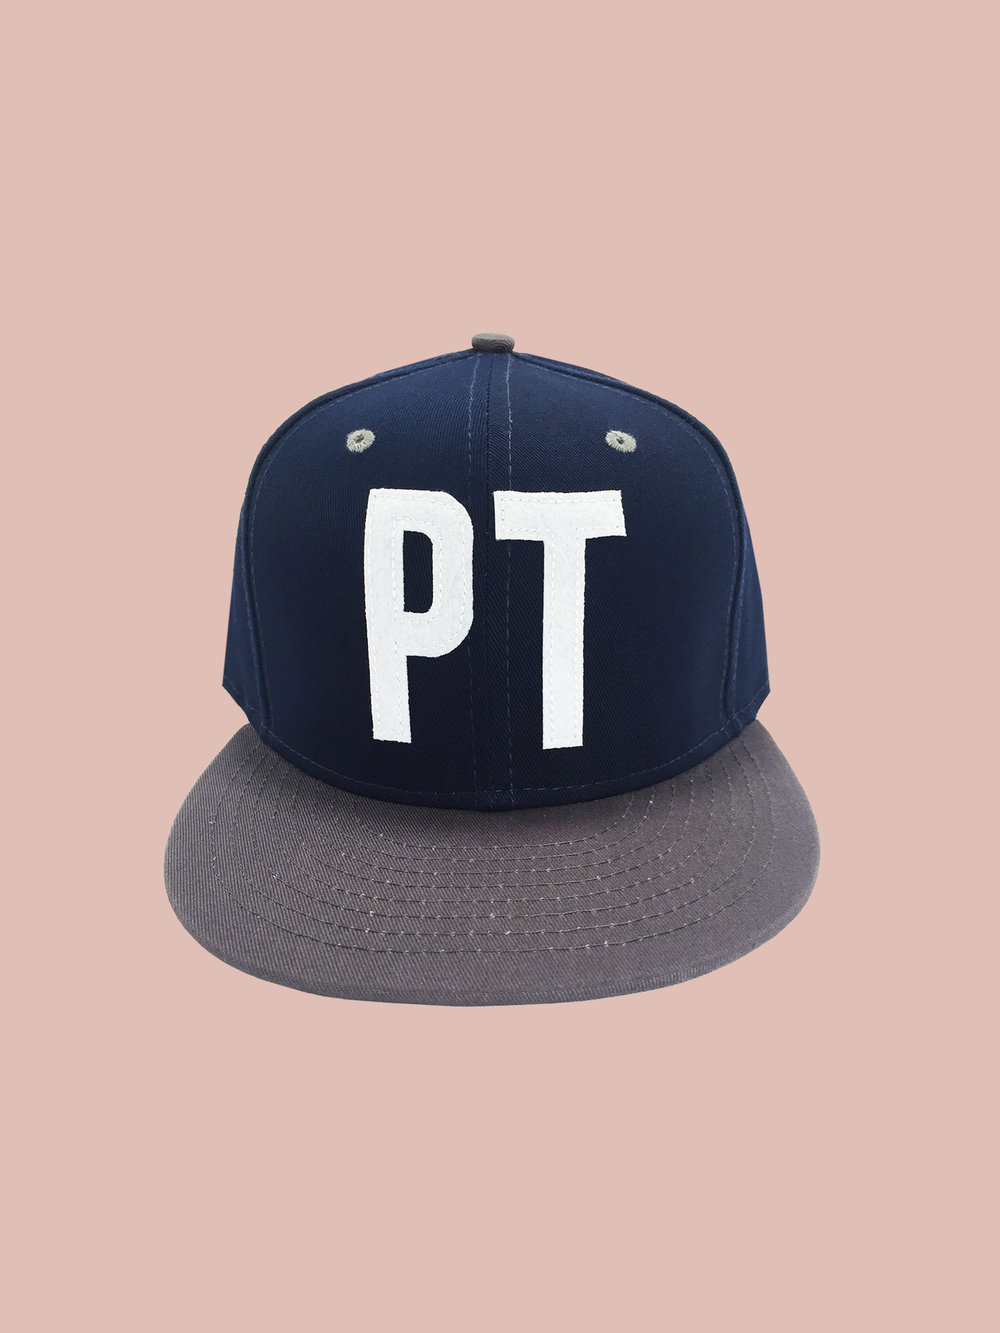 BASEBALL HAT: Navy Ptown Hat